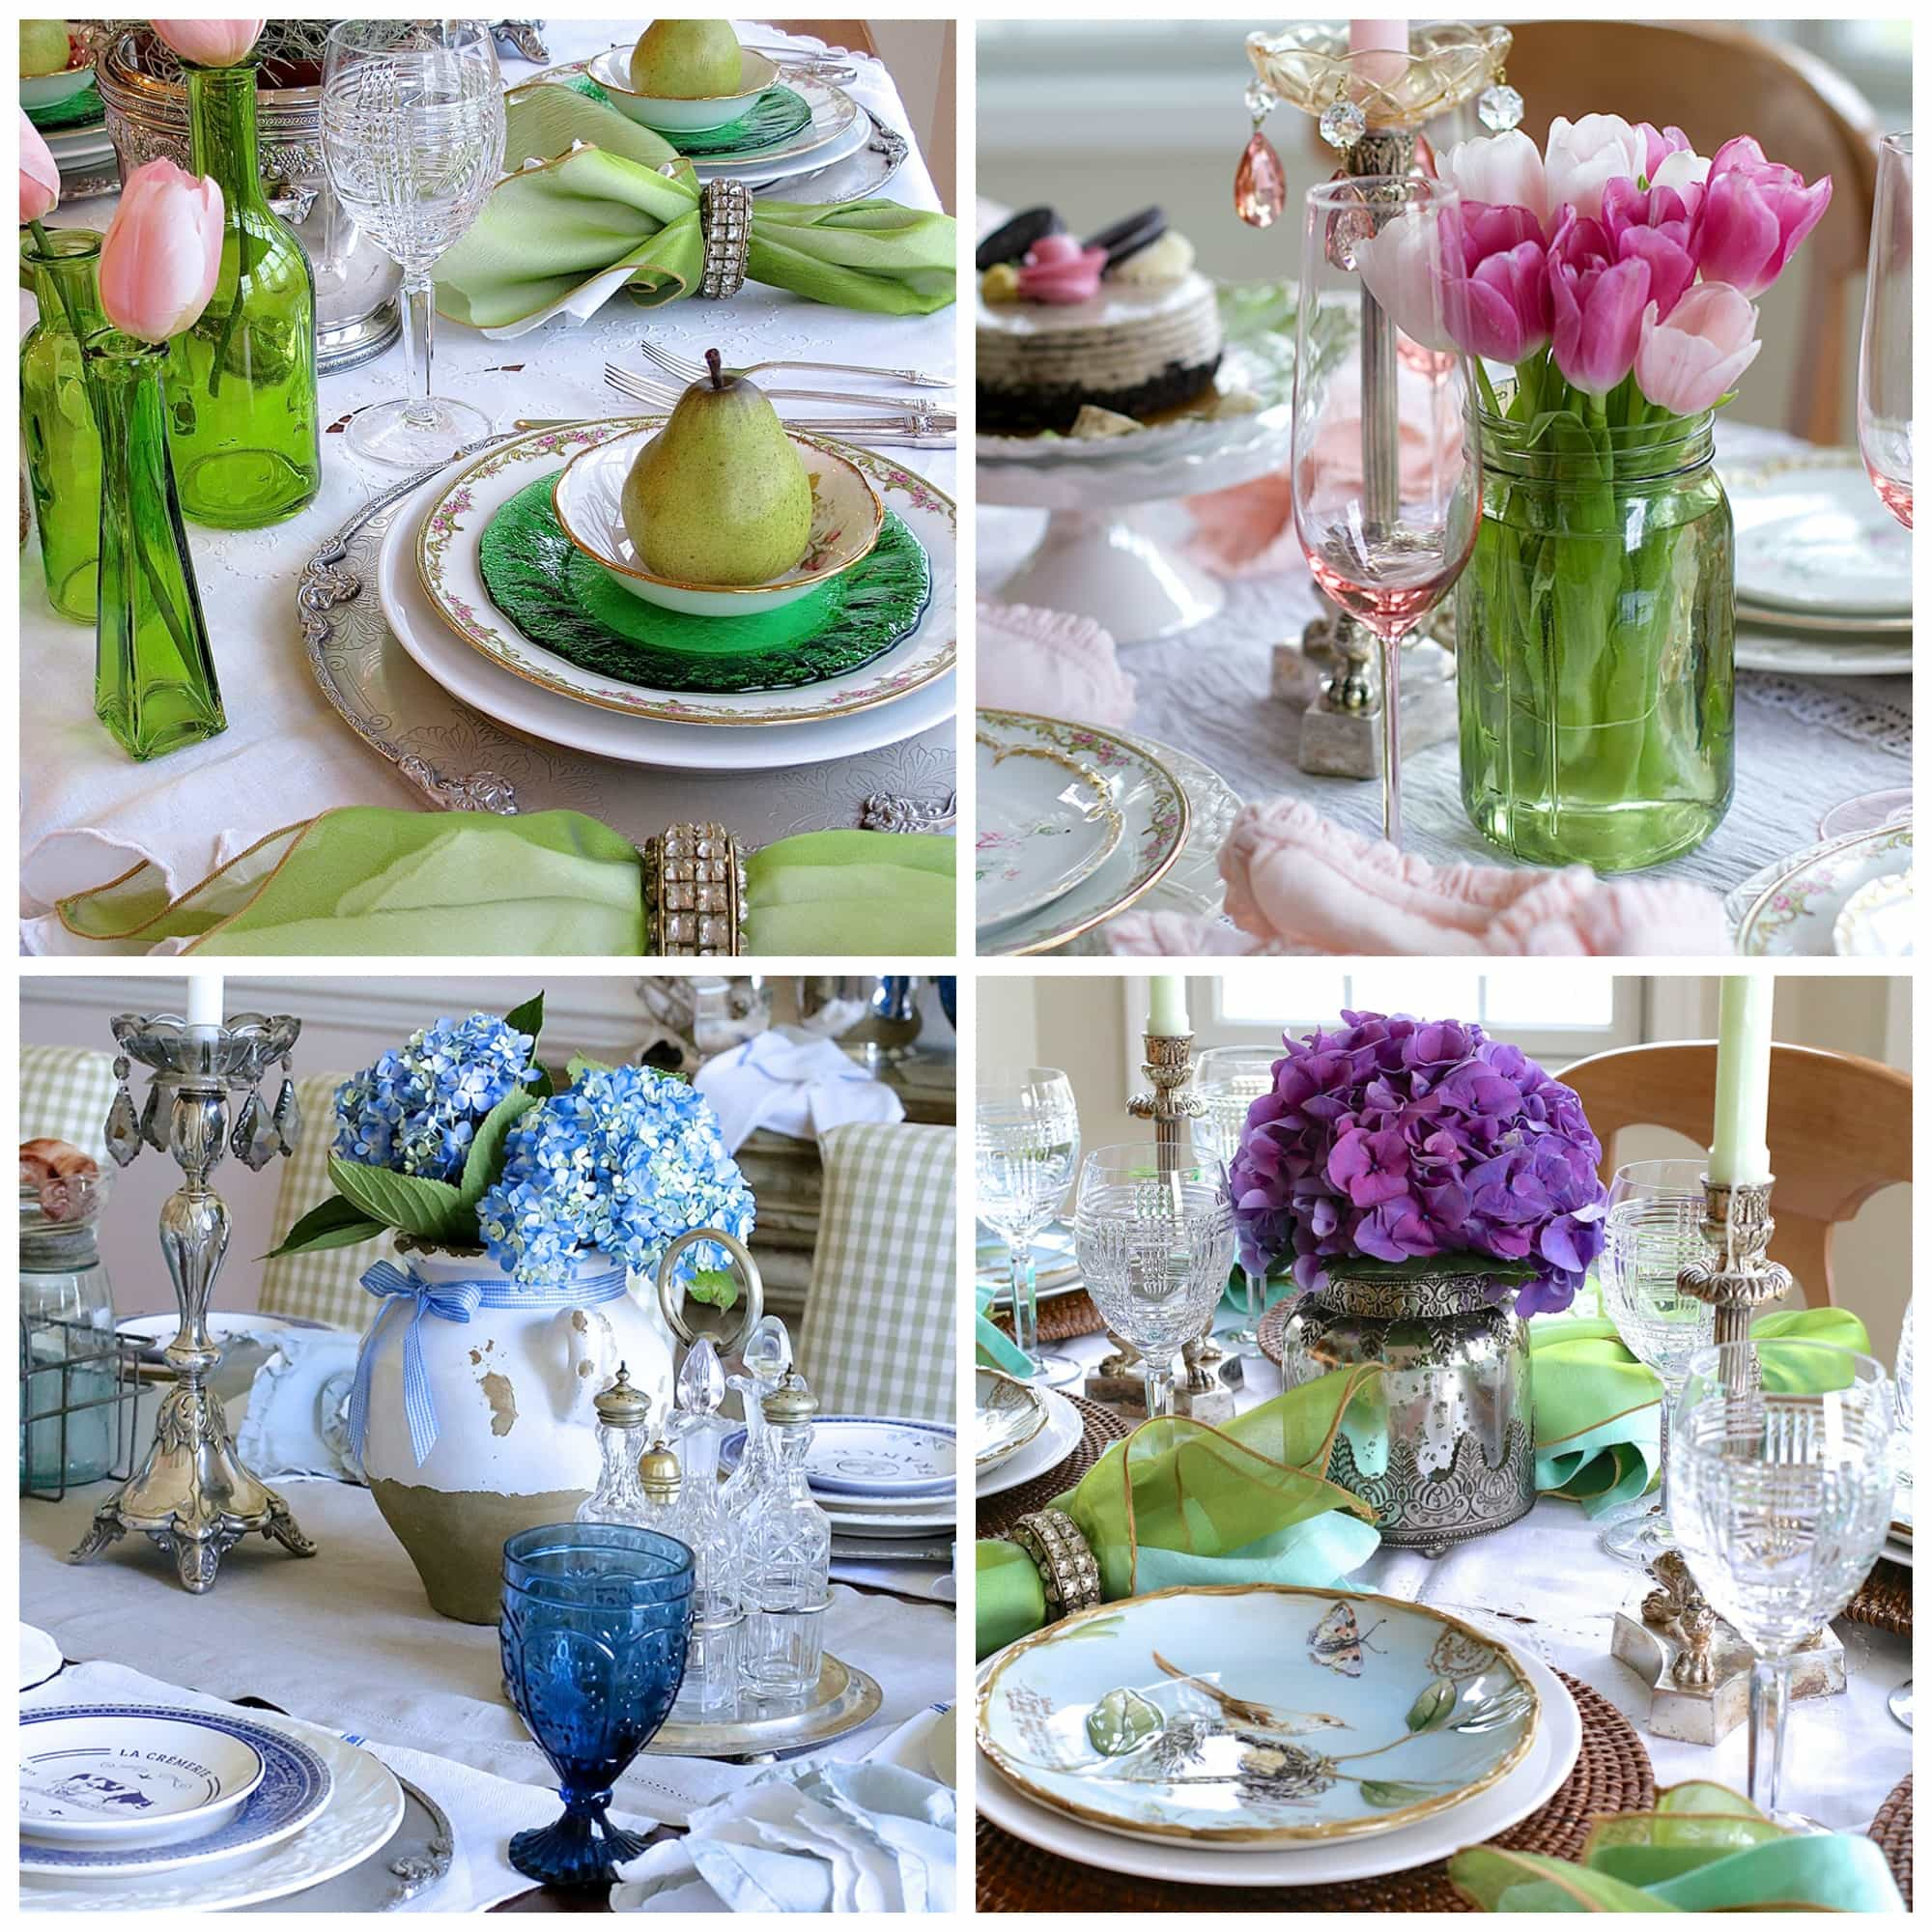 I Thought It Would Be Fun To Take A Look At Some Of My Favorite Tables From  Not That Long Ago, Beginning With This Emerald Green Setting That Is  Perfect For ...